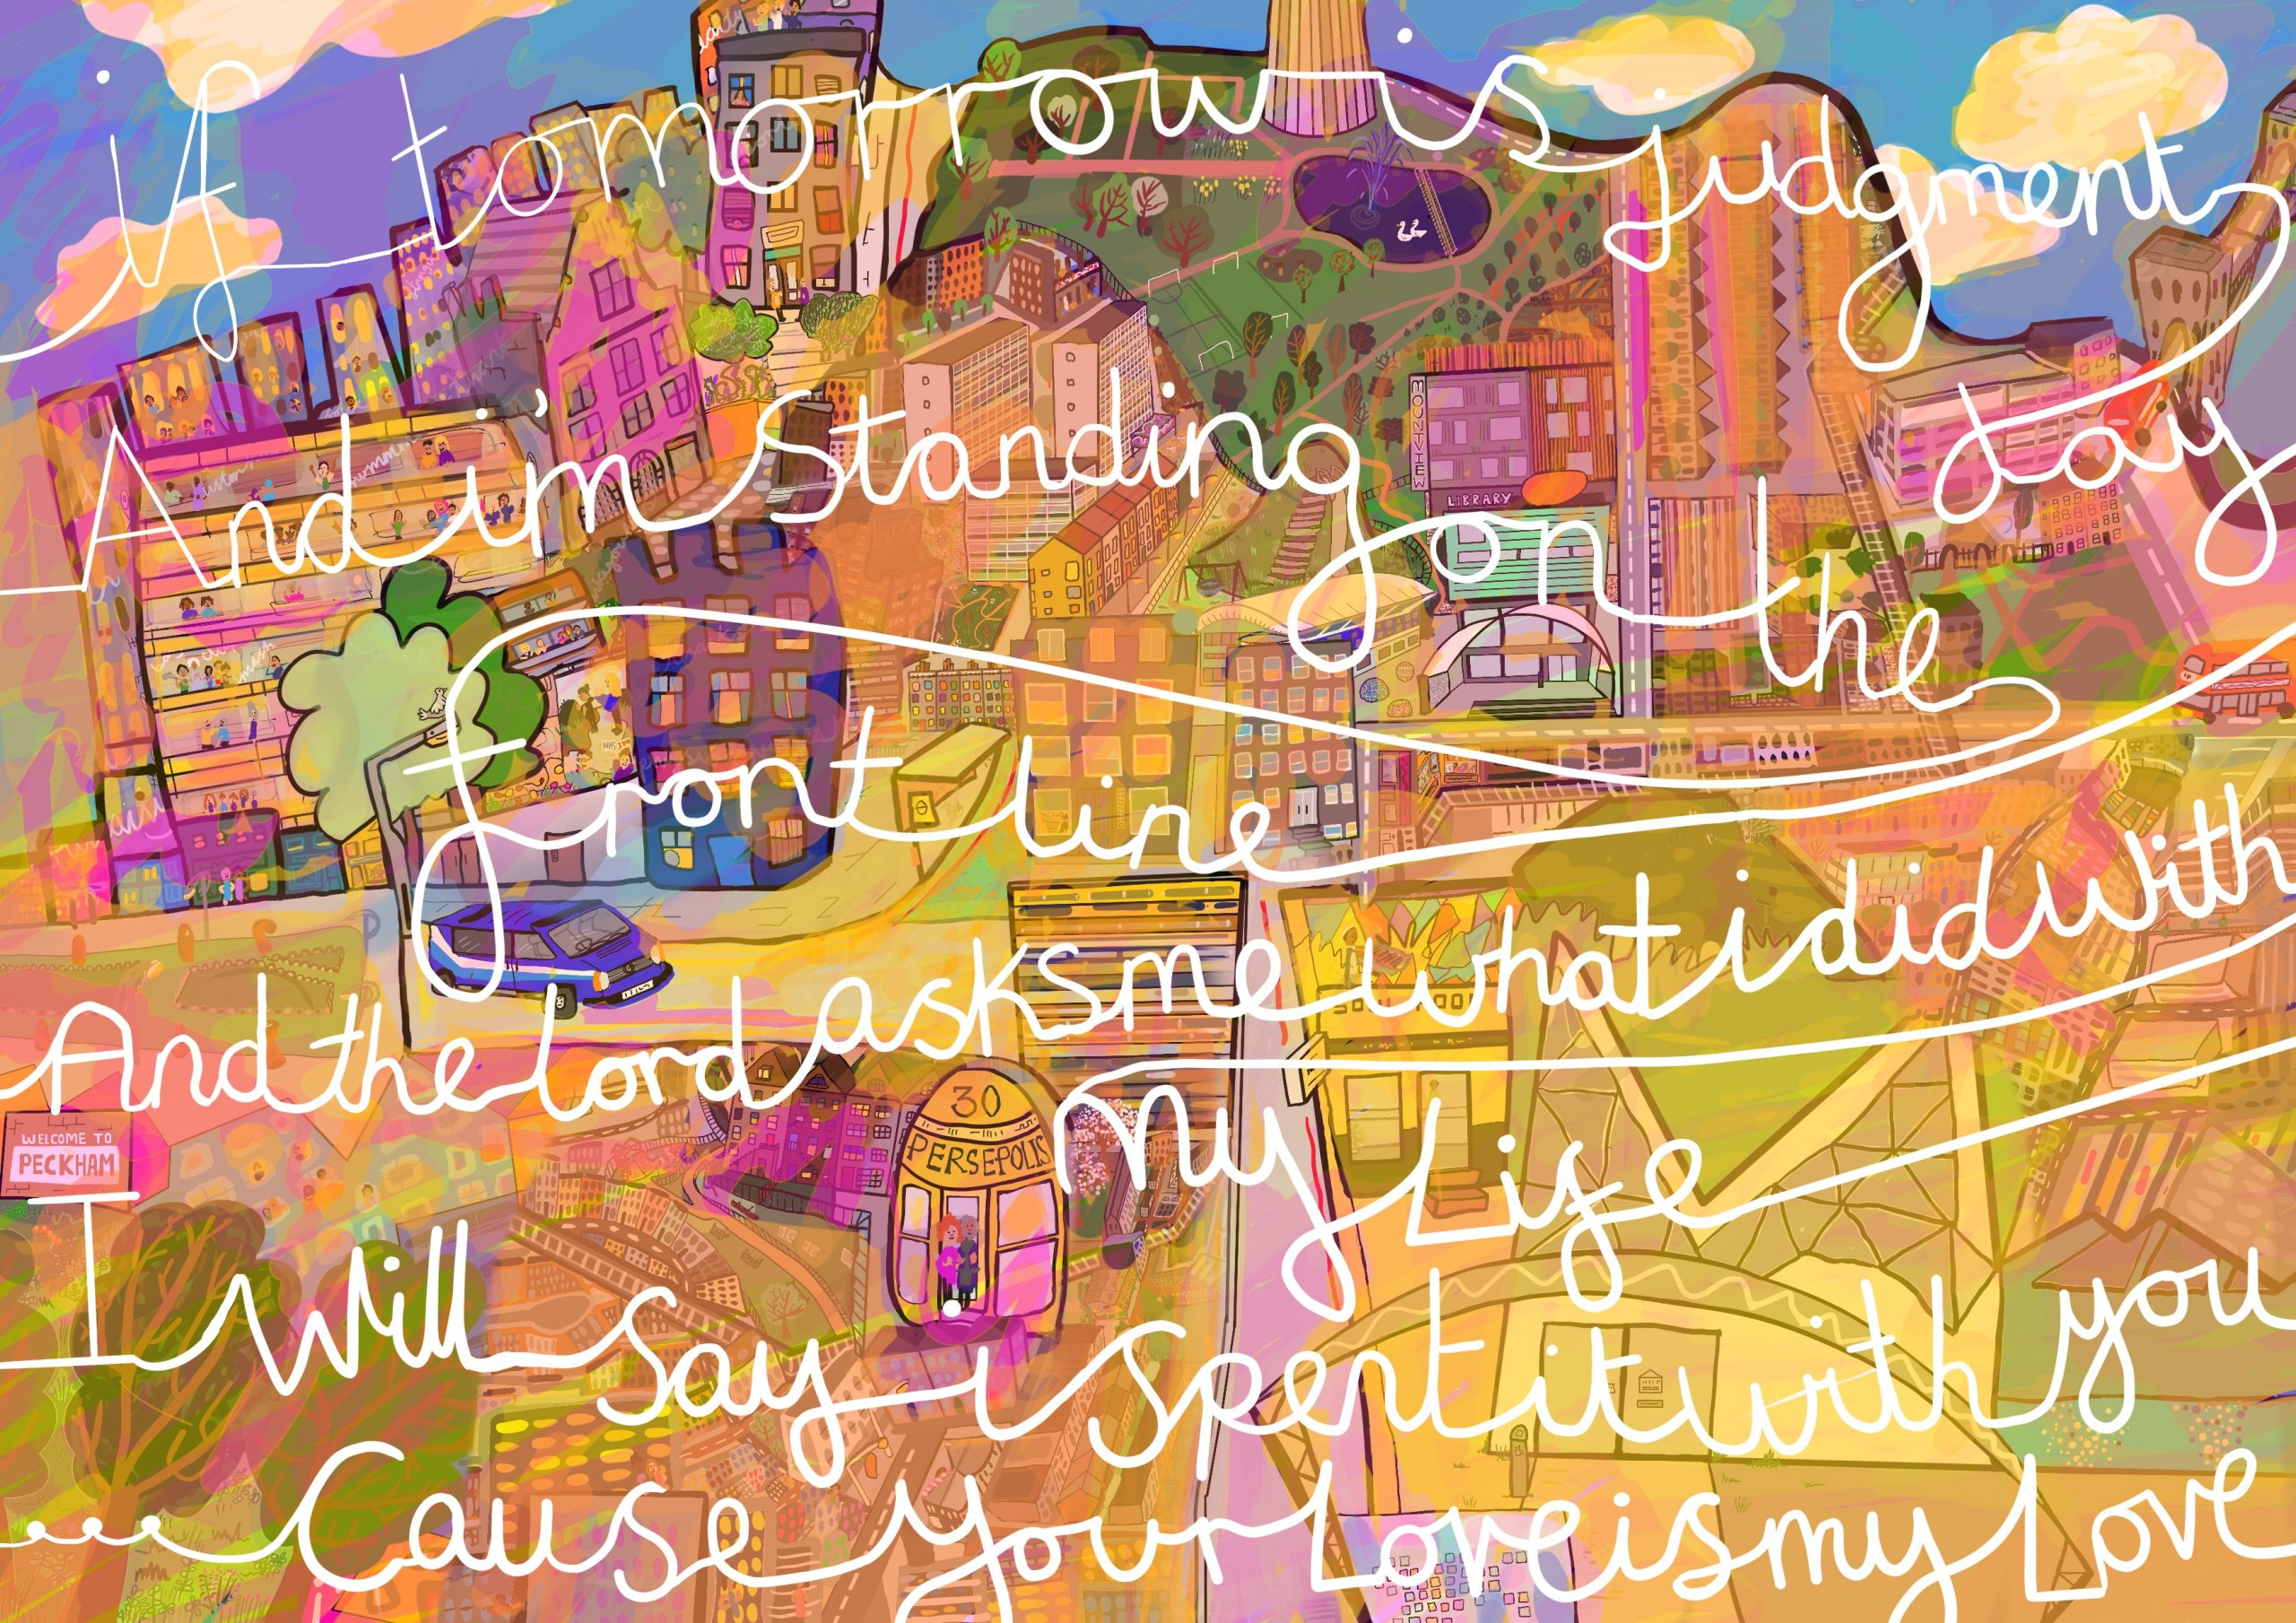 """A digital drawing of a hazy dusty pink evening scene in Peckham in South London during the ninth week of the NHS clap at 8pm during the coronavirus pandemic. Central to the image is Touretteshero's home, the Castle. Outside parked is the blue van with sky blue, white and blue racing stripes is the Touretteshero Van and various shops of Peckham such as JB Soul Food, Persepolis, the Library and Peckham Pulse gym and swimming pool. Overlaying the scene is white joint writing containing the words """"If tomorrow is judgment day and I'm standing on the front line and the lord asks me what I did with my life I will say I spent it with you cause your love is my love"""""""